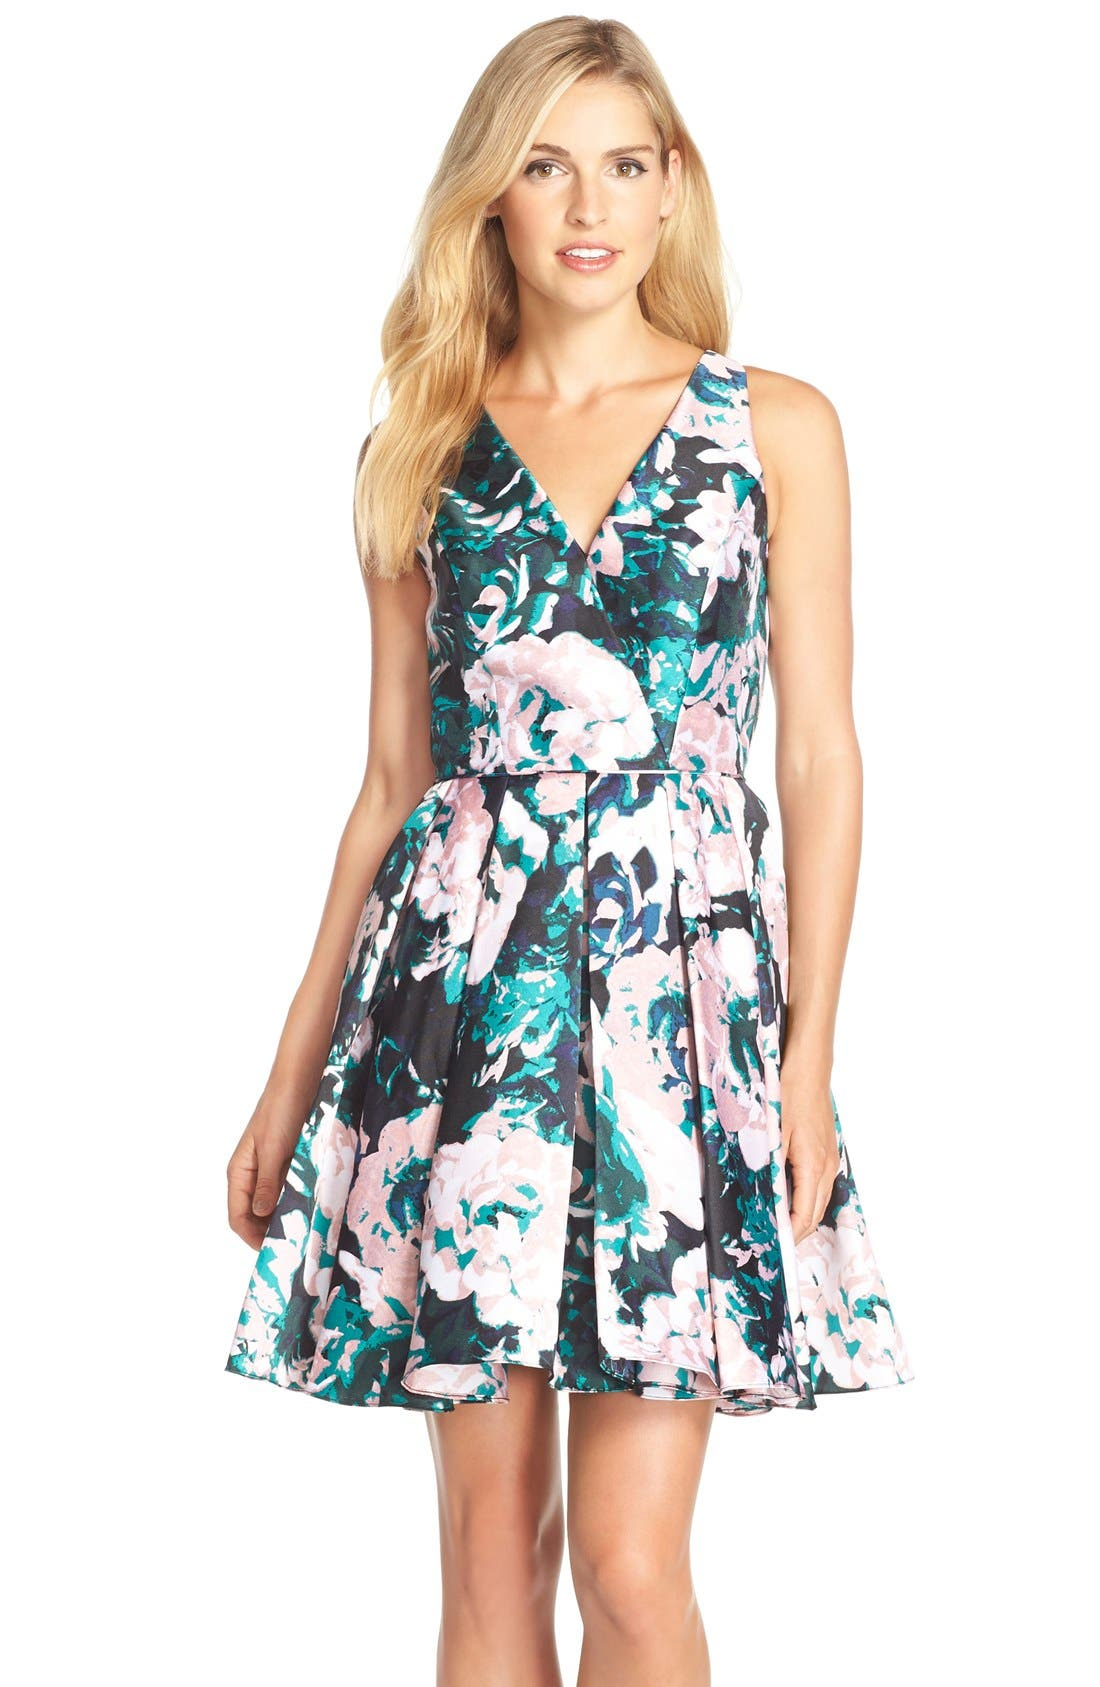 Alternate Image 1 Selected - Adrianna Papell Floral Print Mikado Fit & Flare Dress